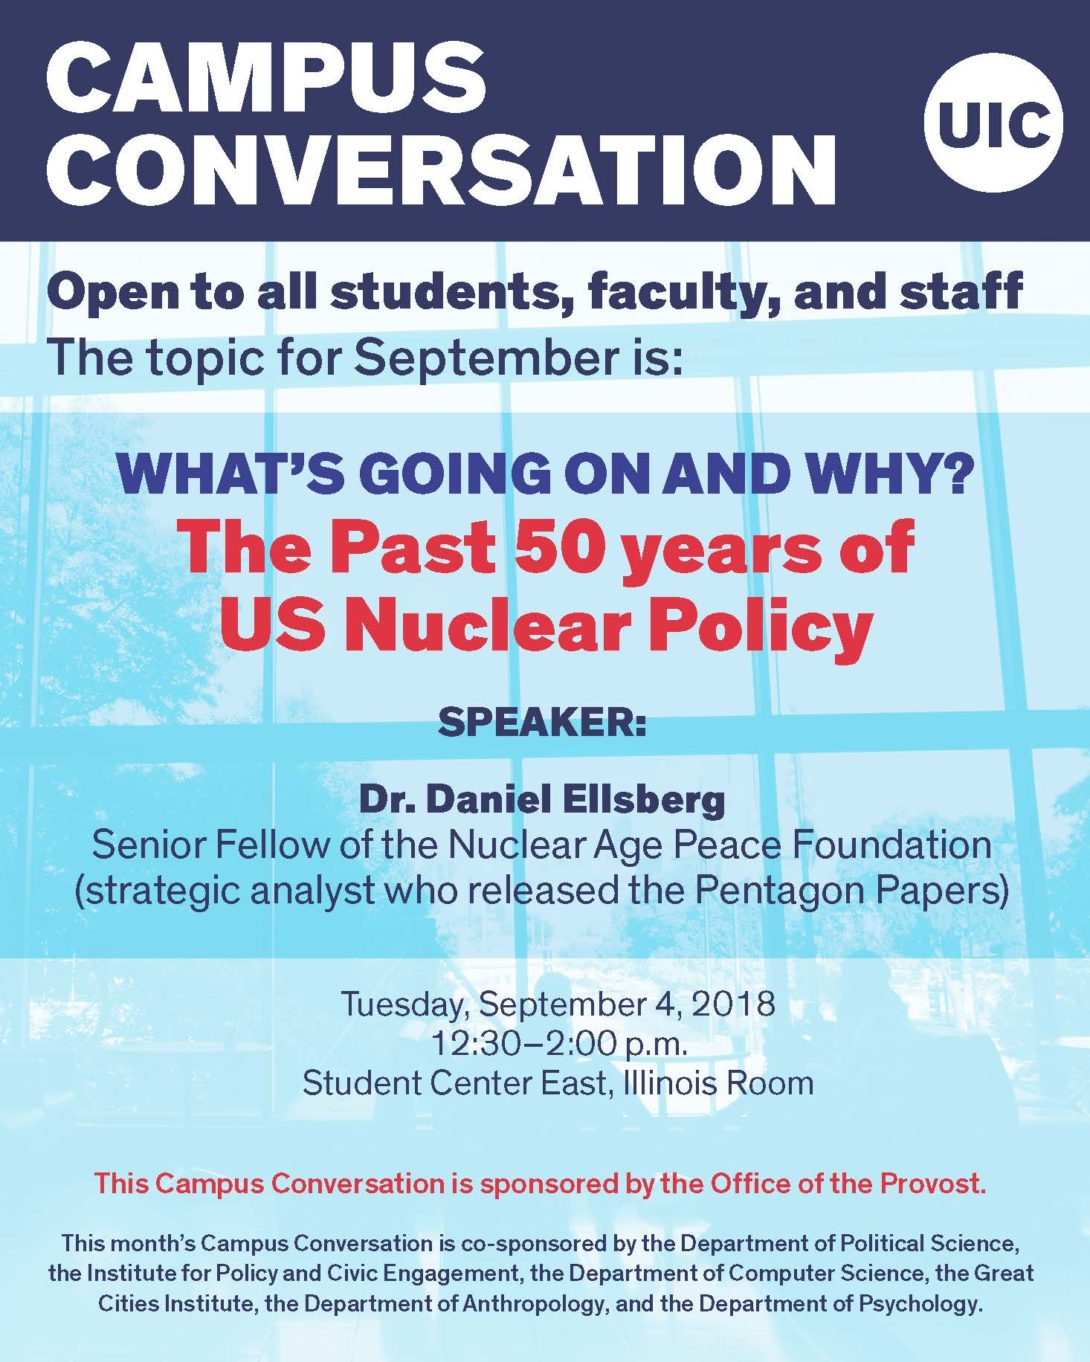 Campus Conversation Sept. 4, 2018: The Past 50 Years of U.S. Nuclear Policy